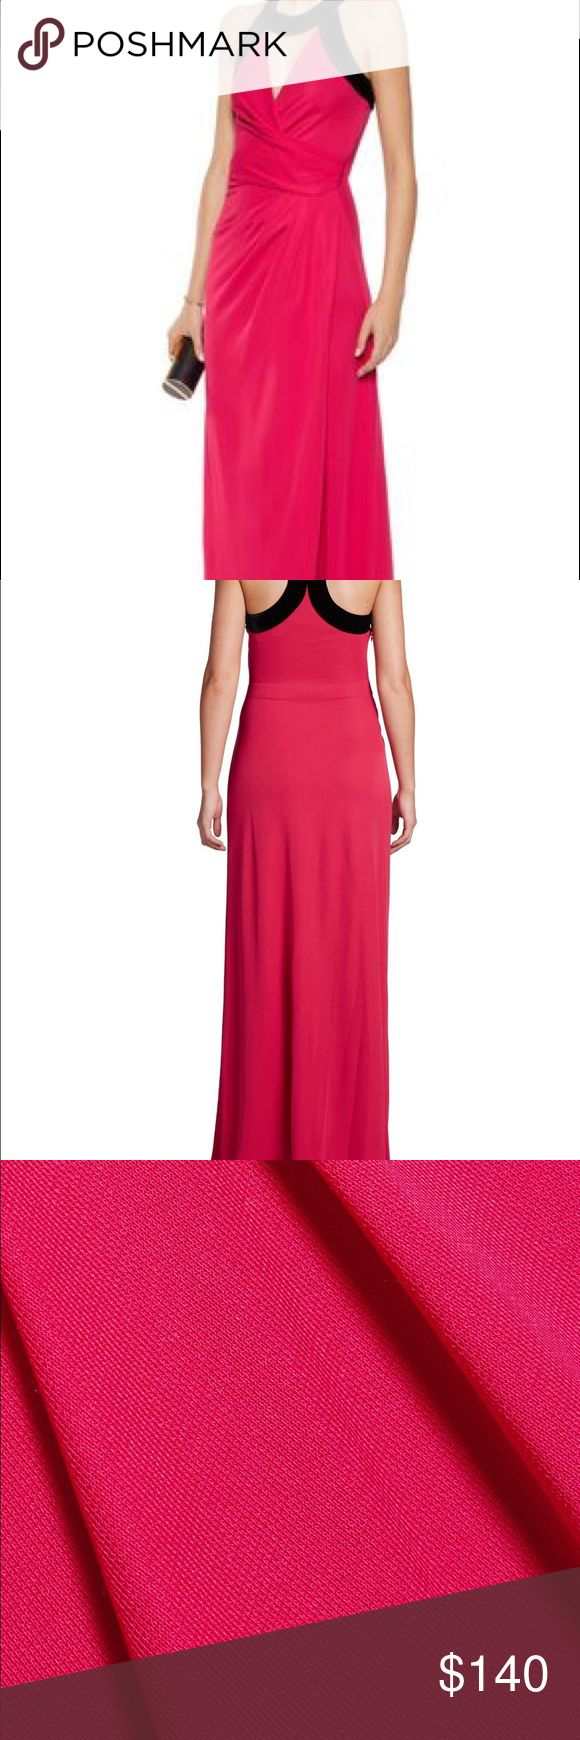 Halston Heritage Red Velvet-Trim Mock Wrap Gown Halston Heritage bright-pink (reads red to my eye) gown - Cutout front, wrap-effect bodice, front slit, black velvet trims, partially lined- Concealed zip fastening along side. When you walk or sit the front slit opens up in a classic sexy look. I wore it once to a client's annual fundraiser. Now it's yours! PS Brought my dad as my date. 🙌 91% rayon, 9% nylon; trim: 82% rayon, 18% silk- Dry clean Halston Heritage Dresses Maxi